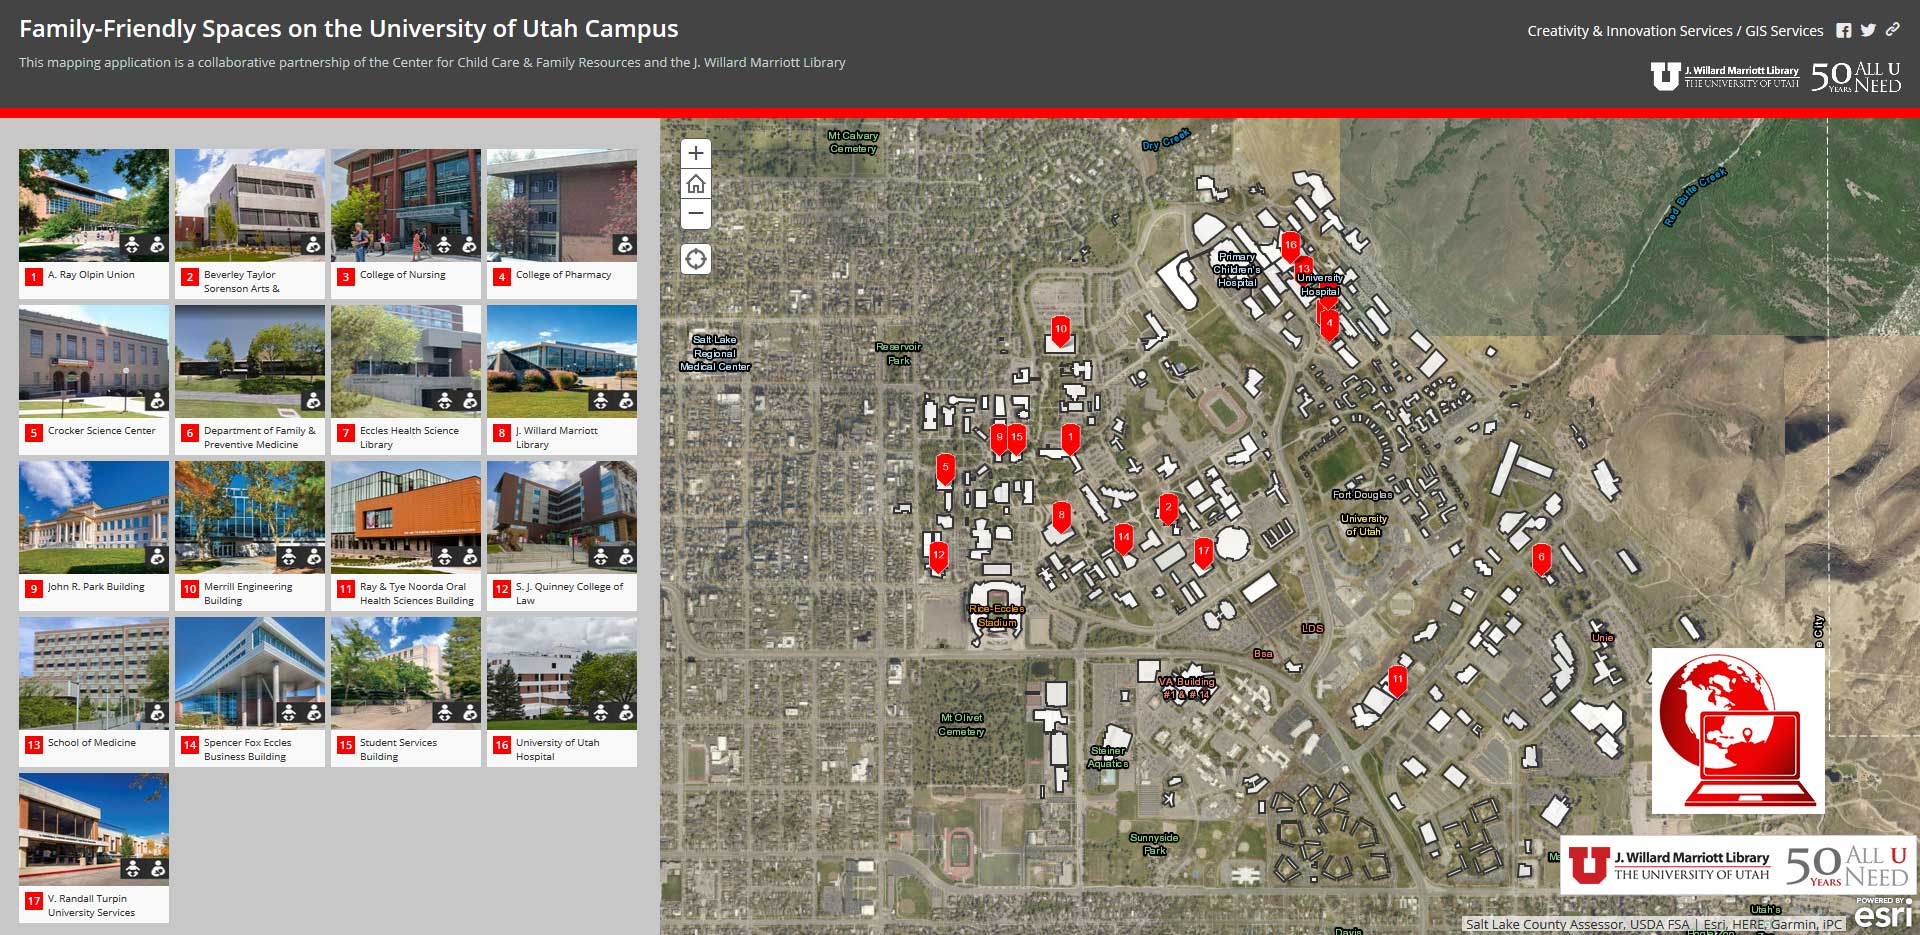 Campus Family Friendly Spaces on the University of Utah Campus